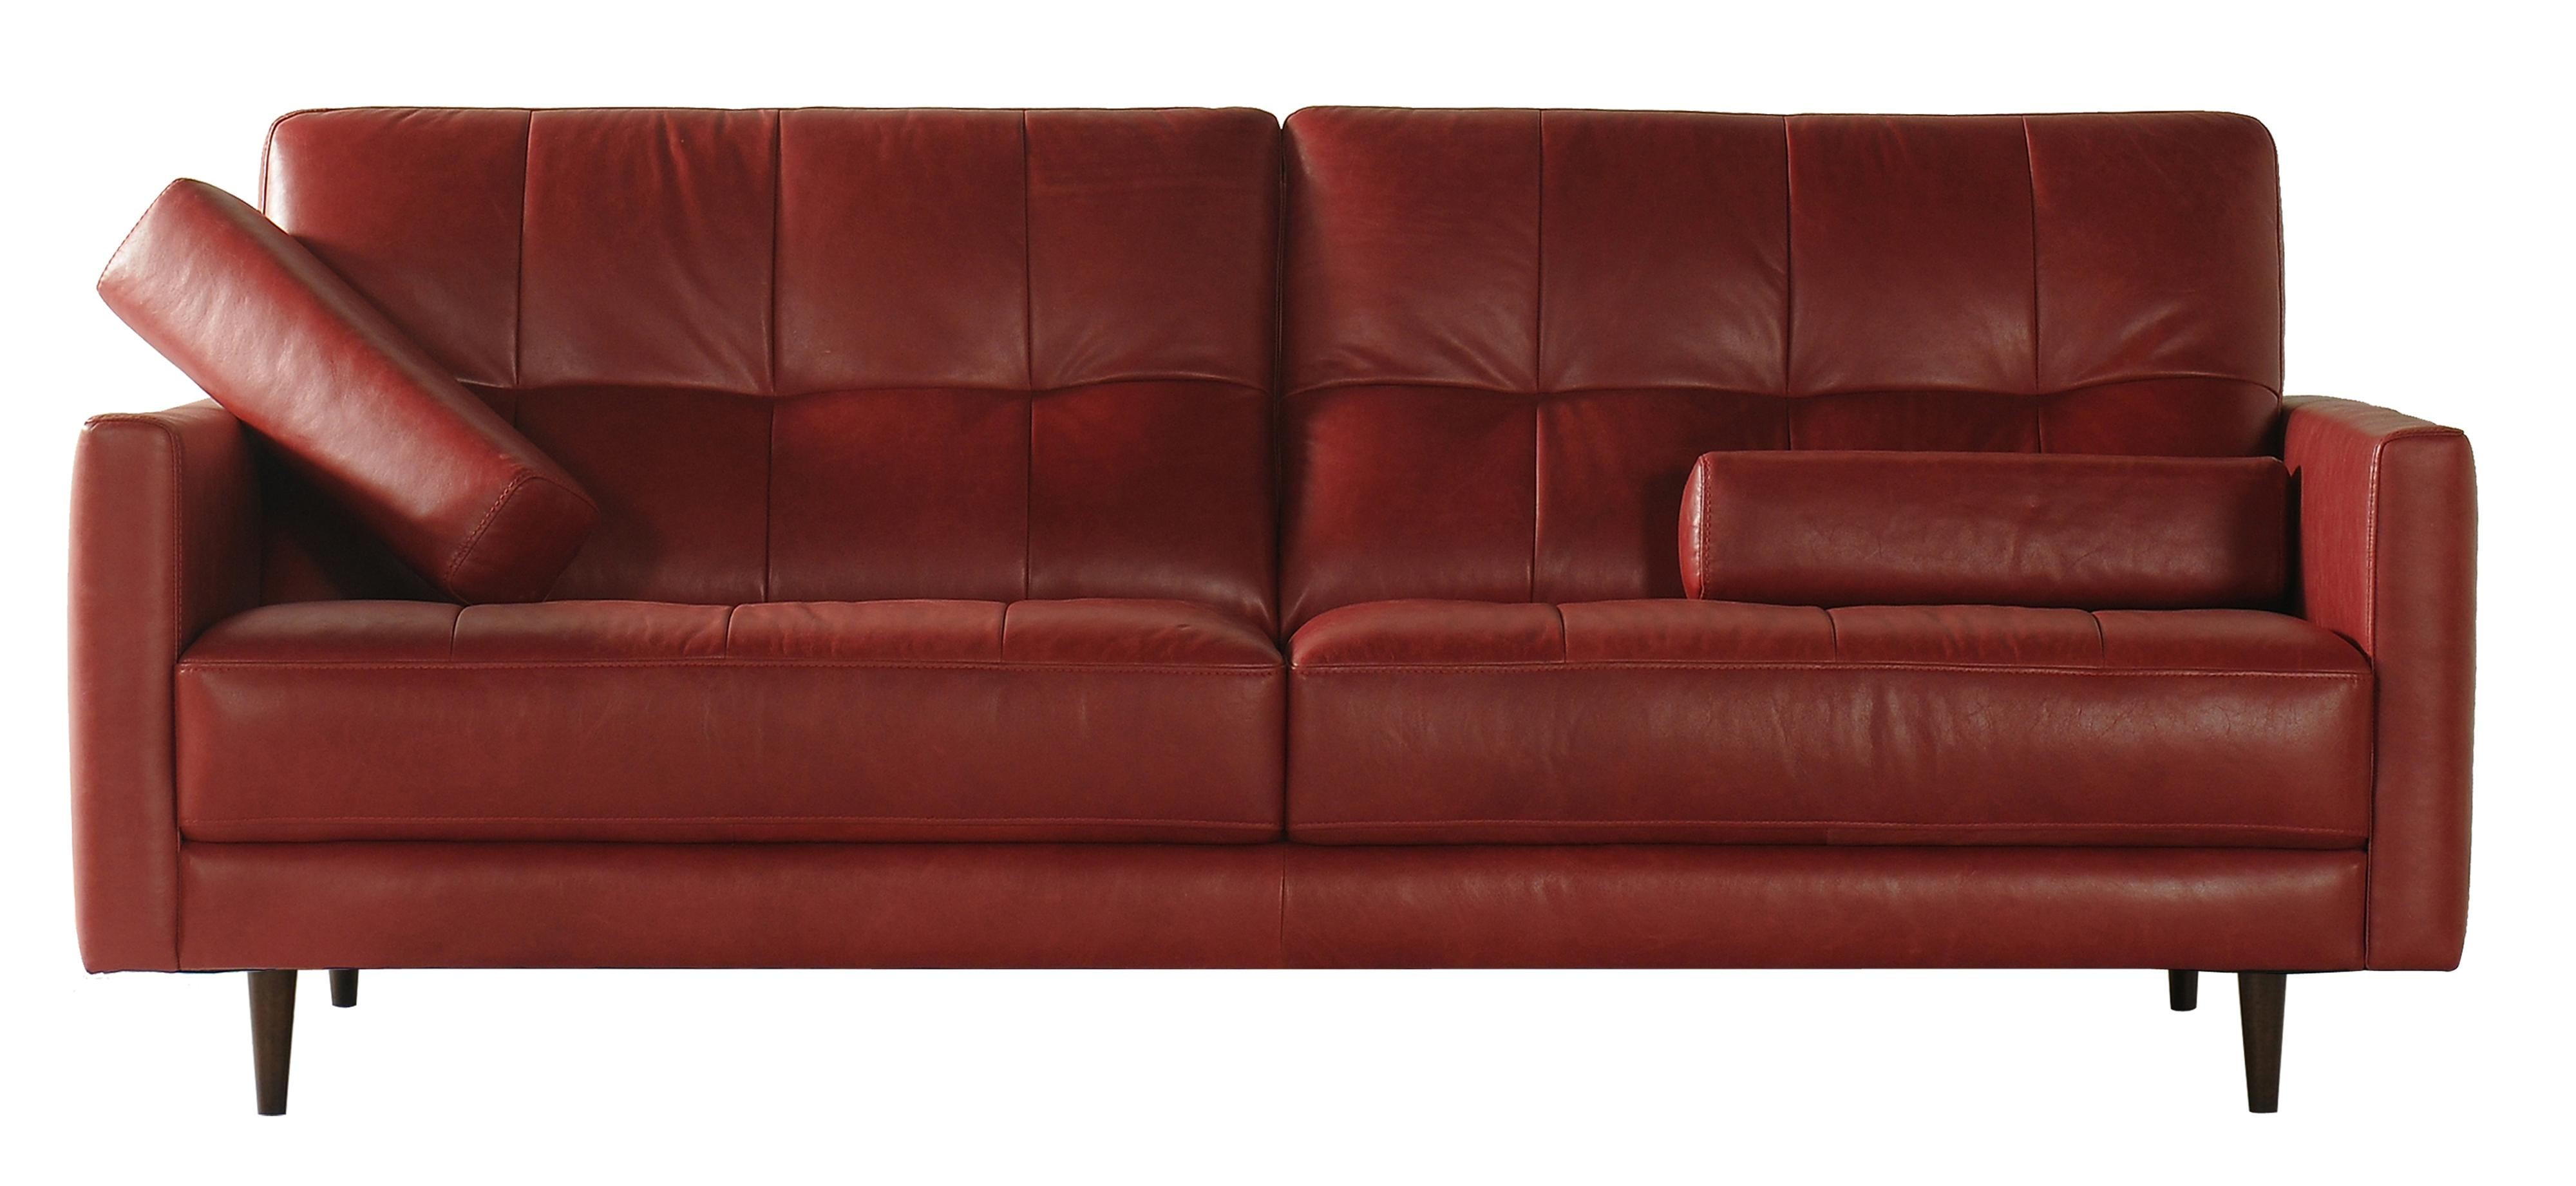 7904 Sofa by Violino at Furniture Superstore - Rochester, MN